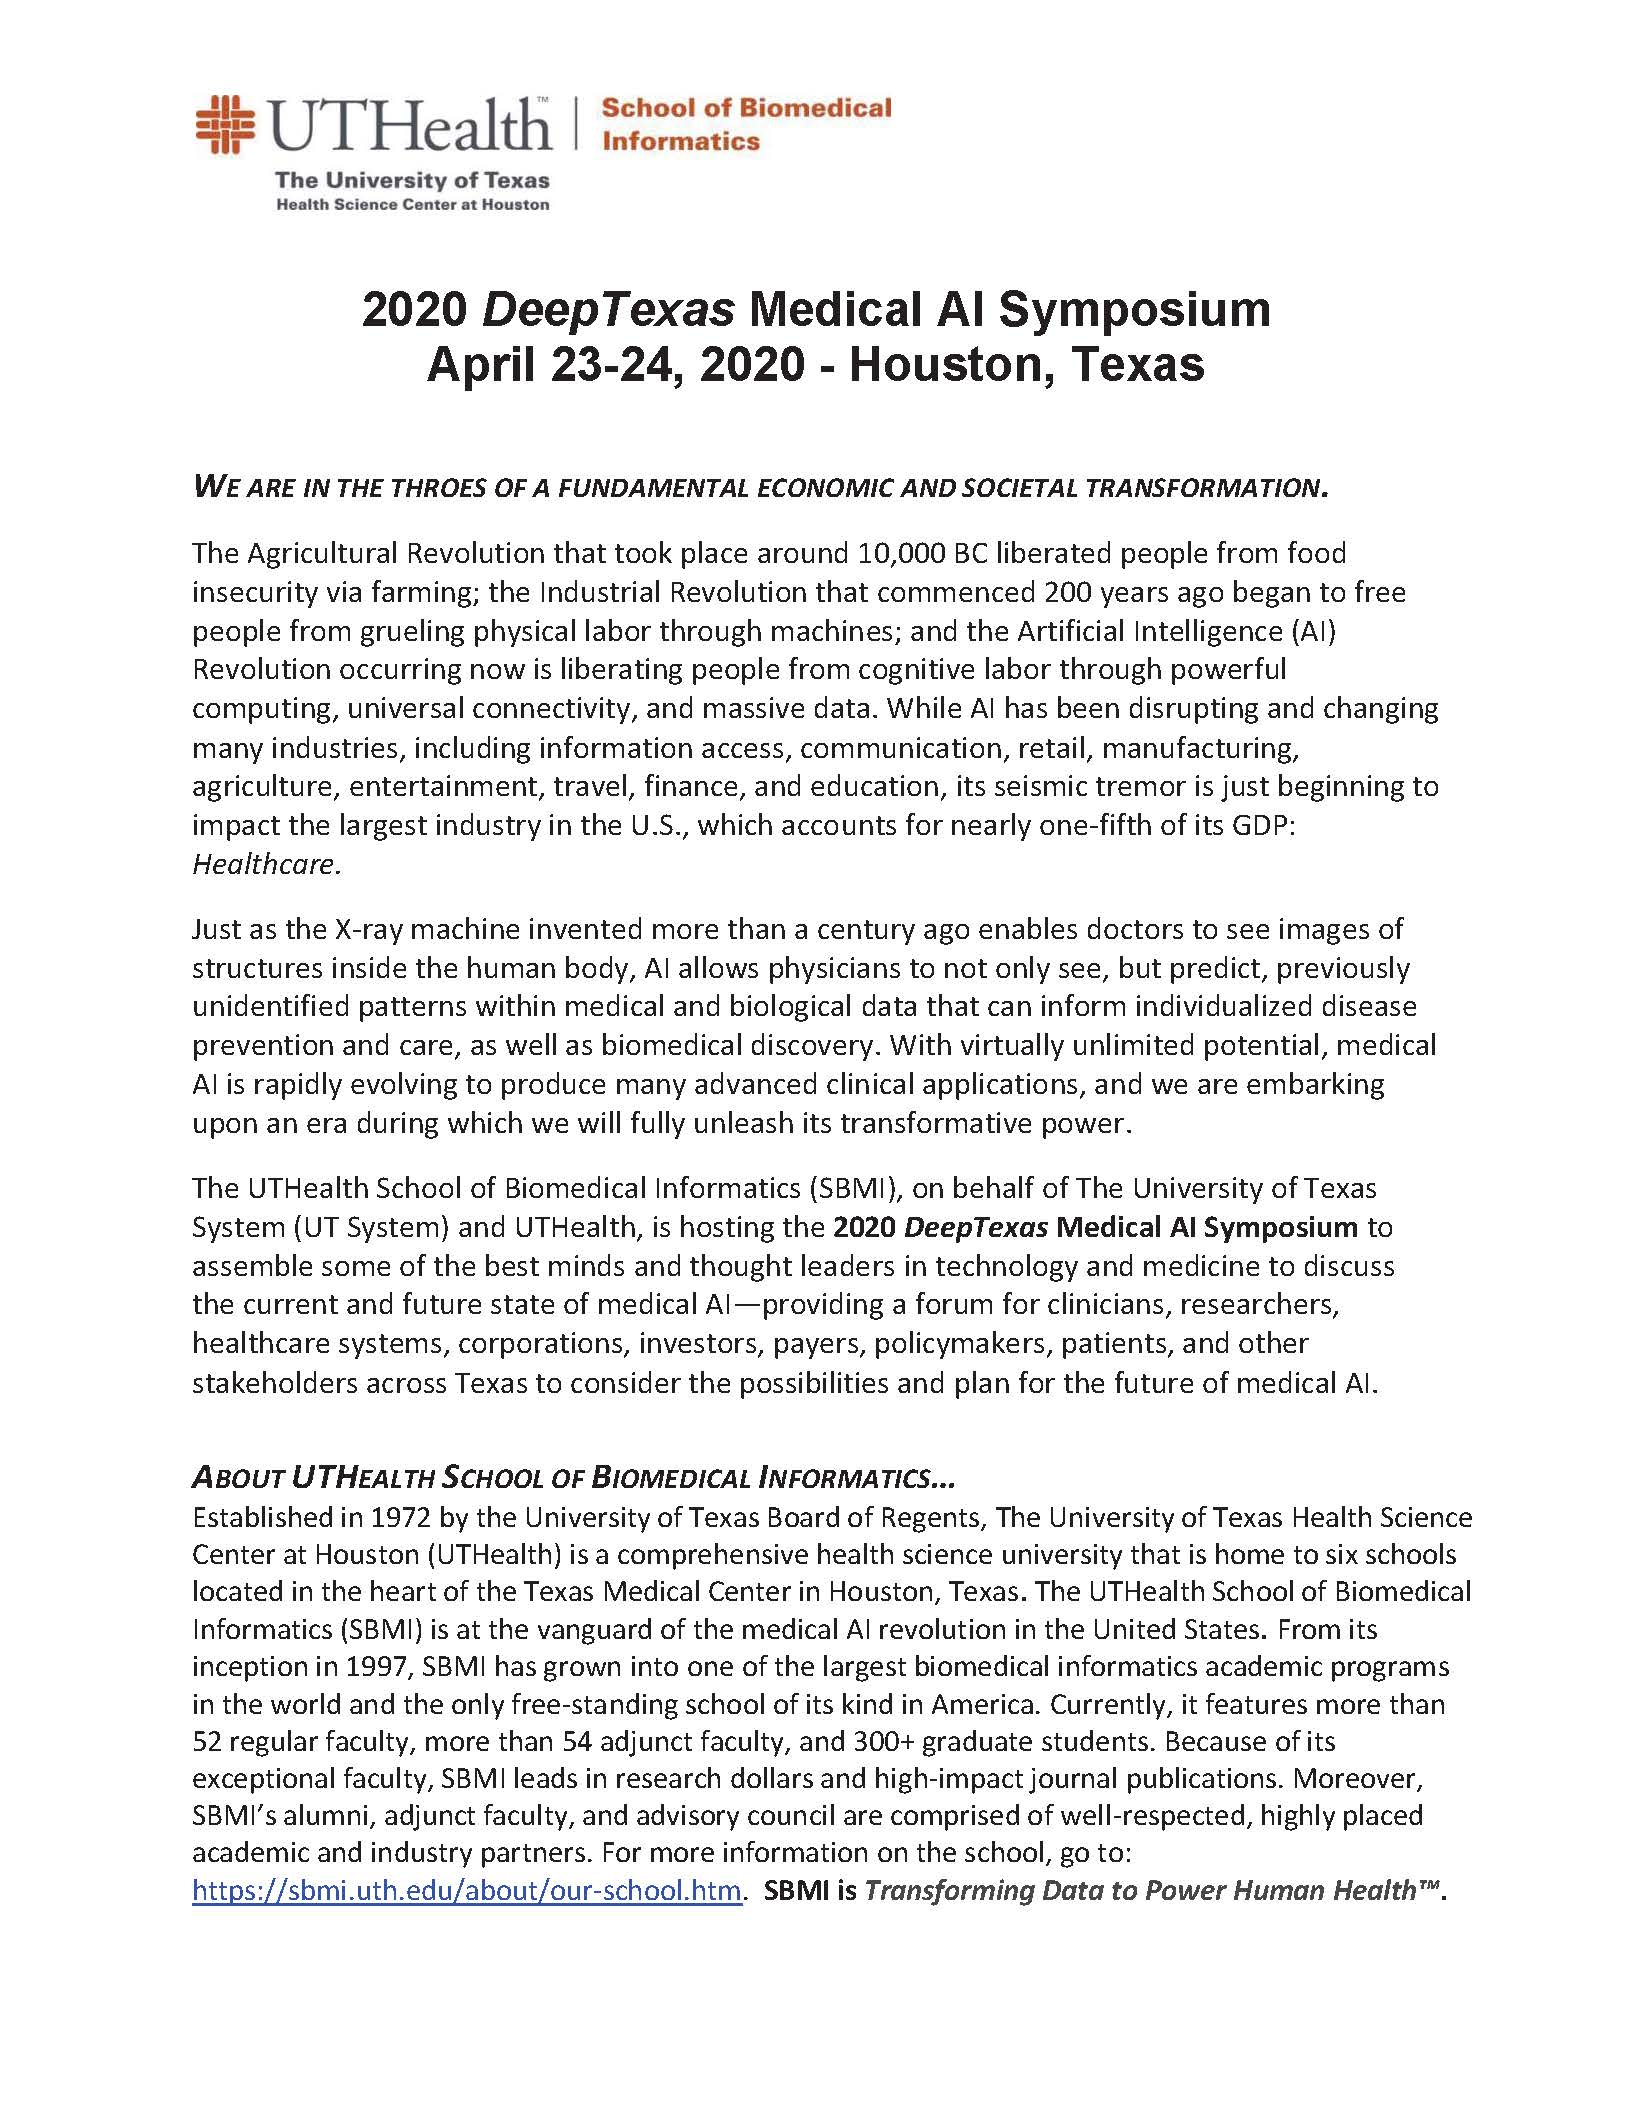 2020 DeepTexas Medical AI Symposium (002)